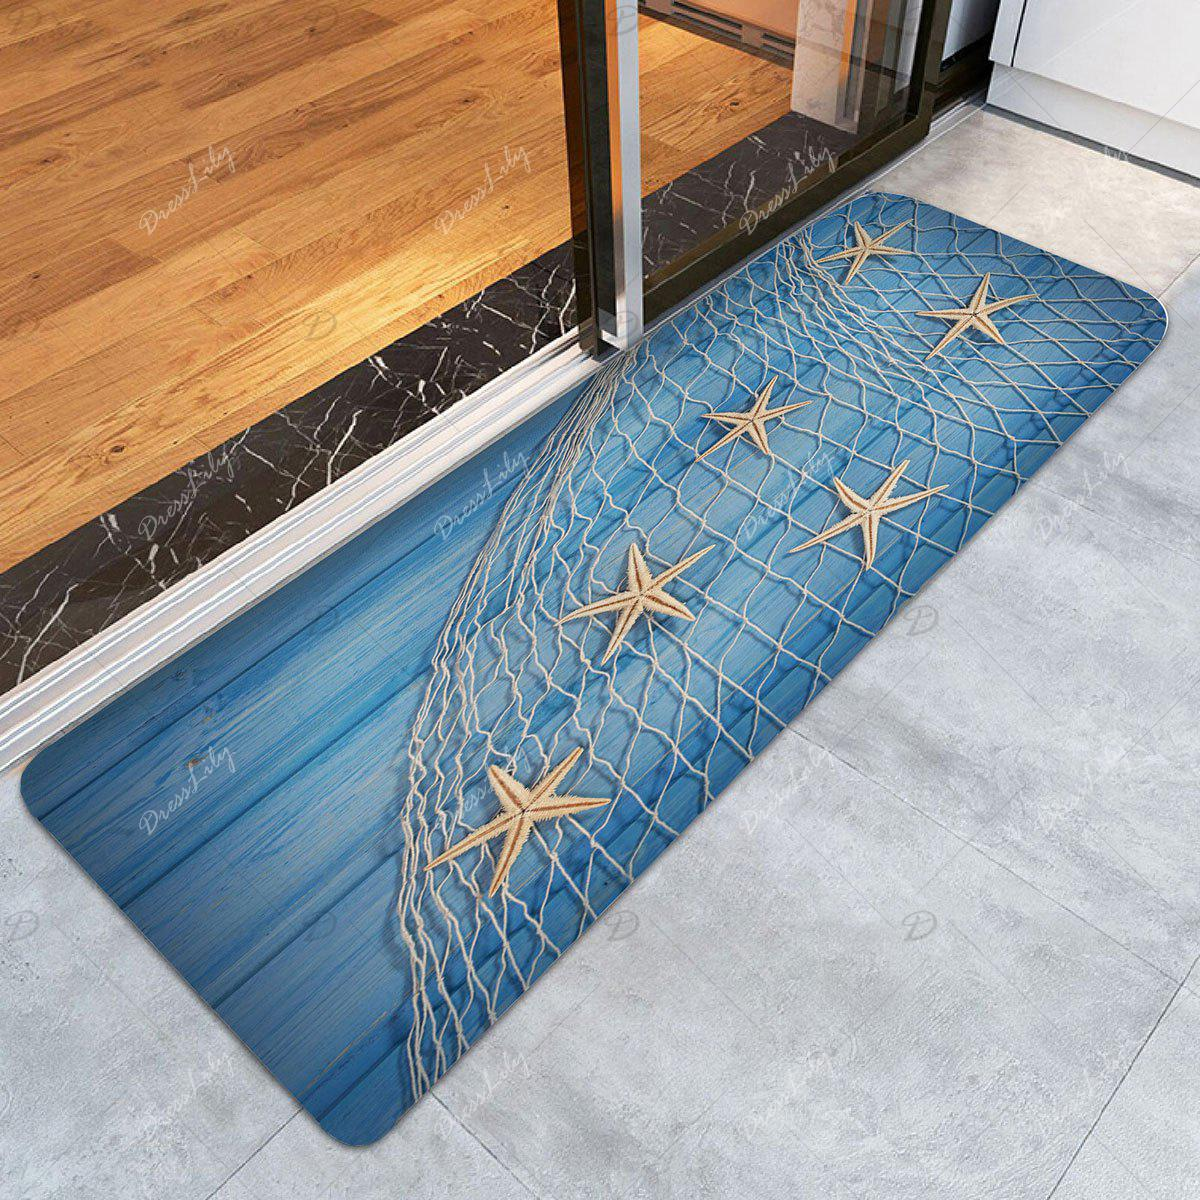 2018 tapis de bain motif filet de p che et etoiles de mer sur plancher en bois bleu clair. Black Bedroom Furniture Sets. Home Design Ideas